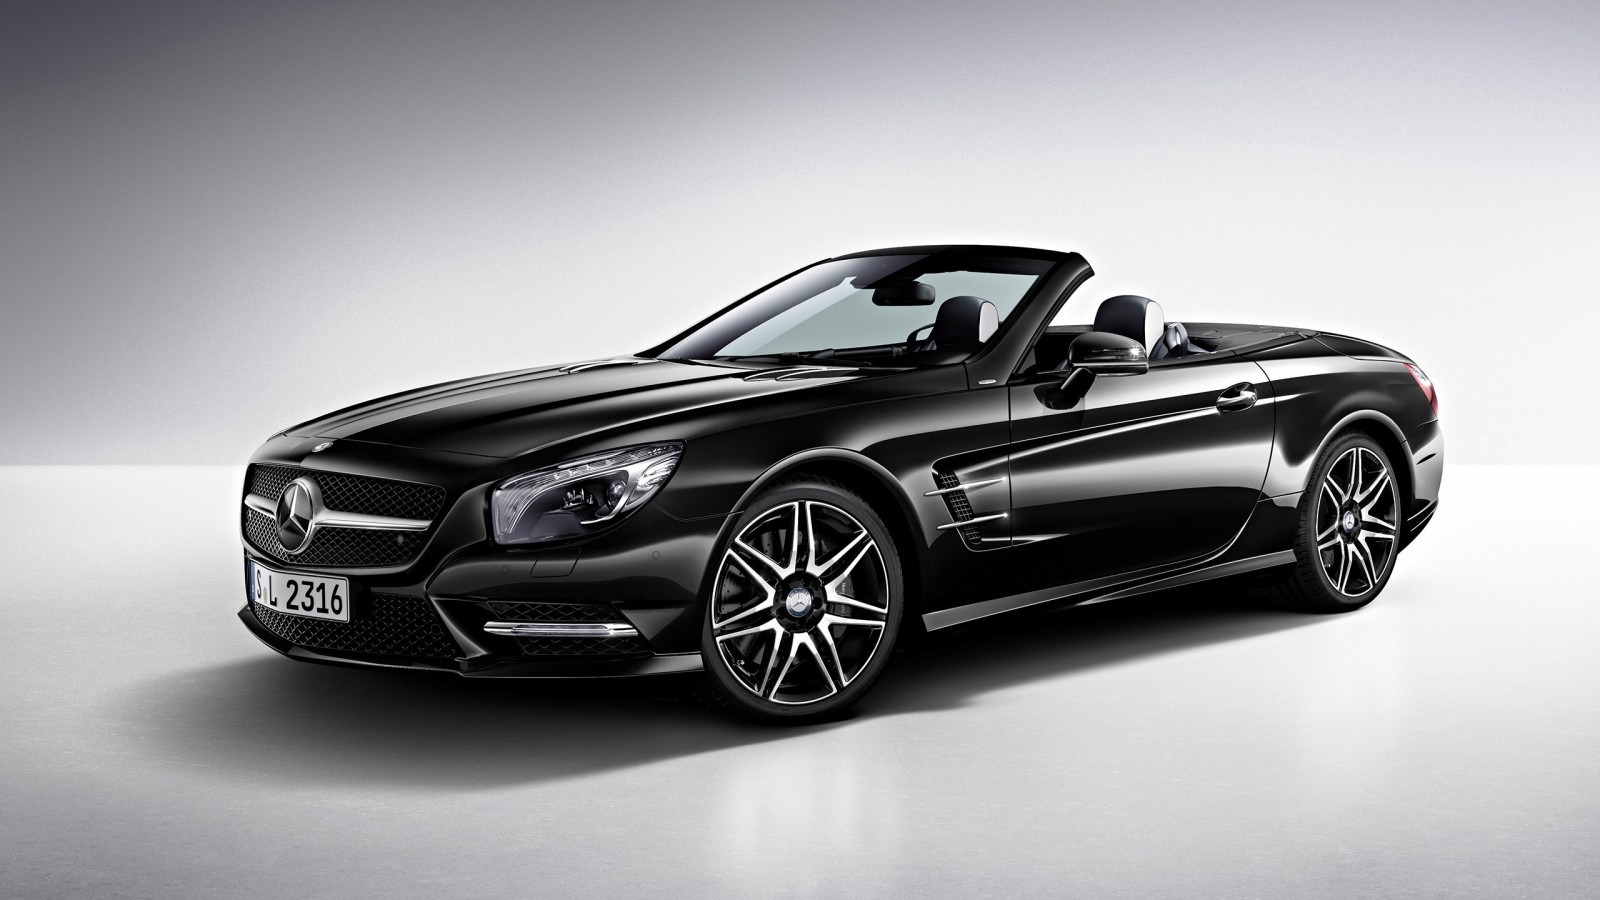 2014 mercedes benz sl 400 wallpaper hd car wallpapers. Black Bedroom Furniture Sets. Home Design Ideas